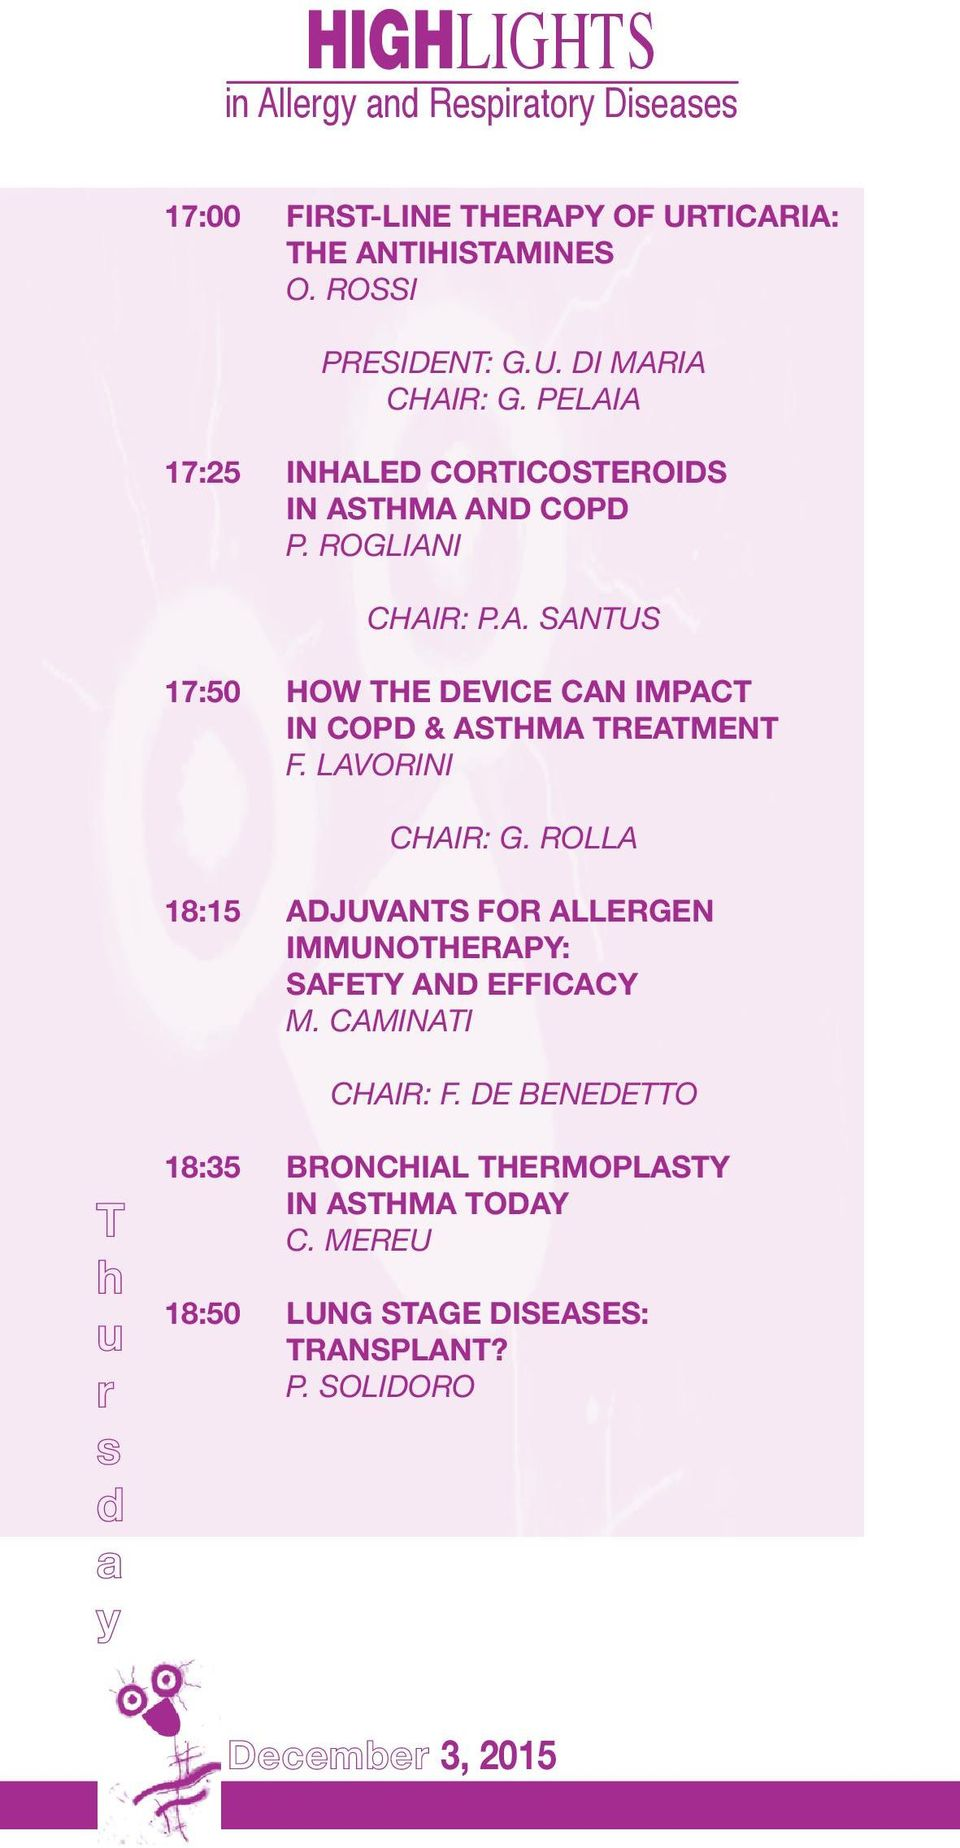 LAVORINI CHAIR: G. ROLLA 18:15 ADJUVANTS FOR ALLERGEN IMMUNOTHERAPY: SAFETY AND EFFICACY M. CAMINATI CHAIR: F.